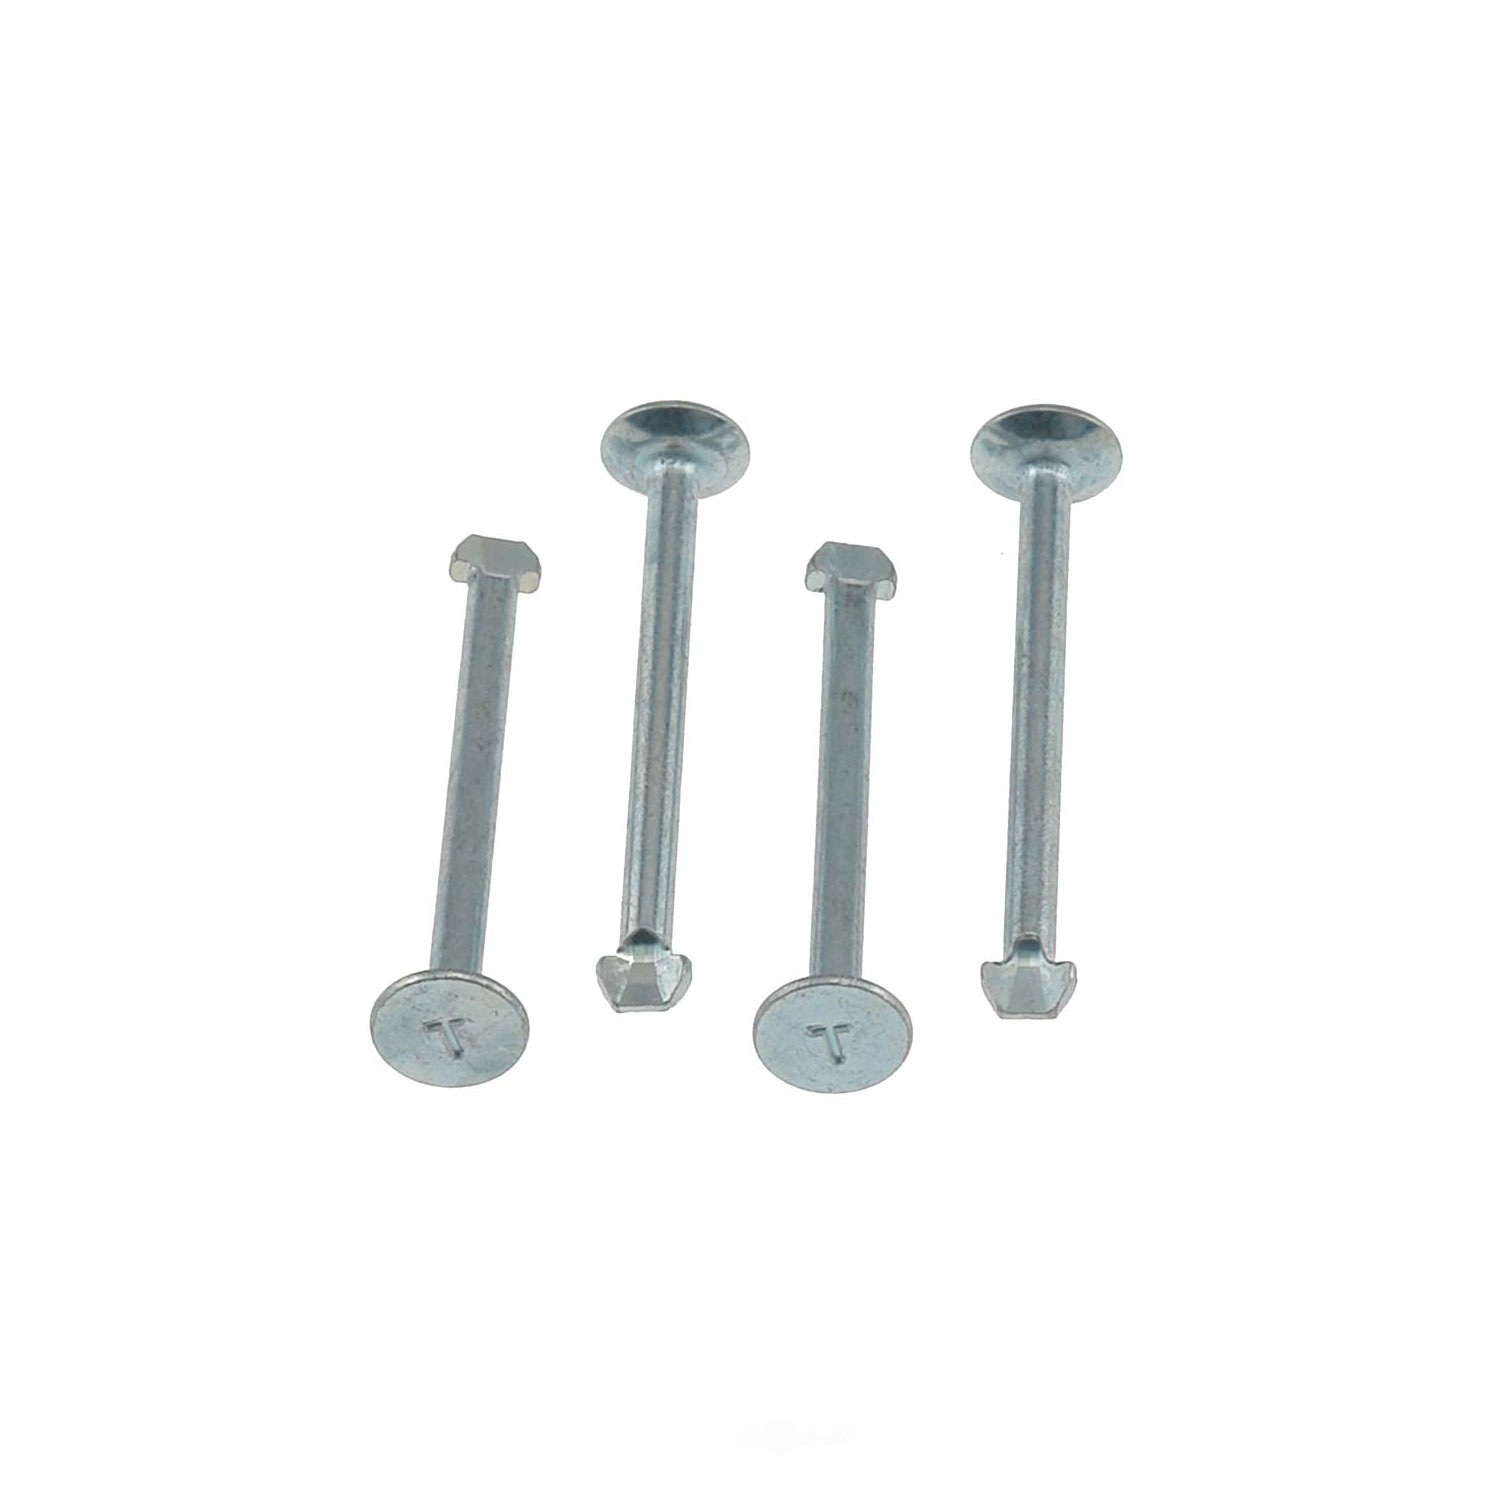 CARLSON QUALITY BRAKE PARTS - Brake Spring Hold Down Pin - CRL H1103-2